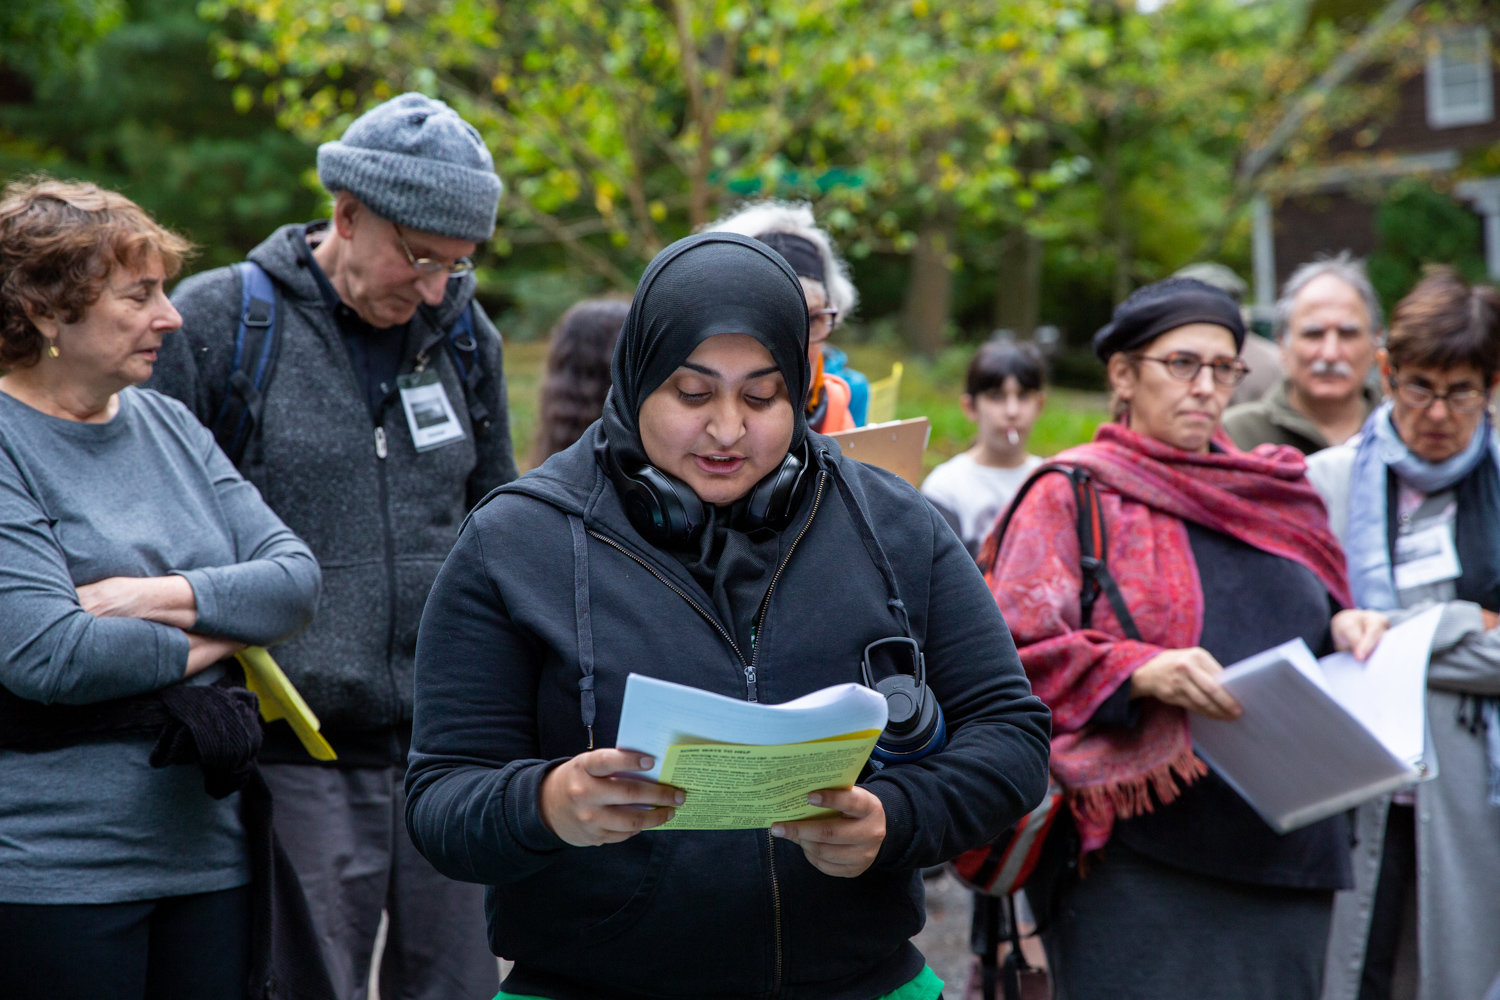 Manhattan College senior Rabea Ali spoke about an asylum-seeking family fleeing violence in Guatemala during a Tashlich ceremony near Delafield Pond that was held, in part, to call attention to the plight of asylum seekers.